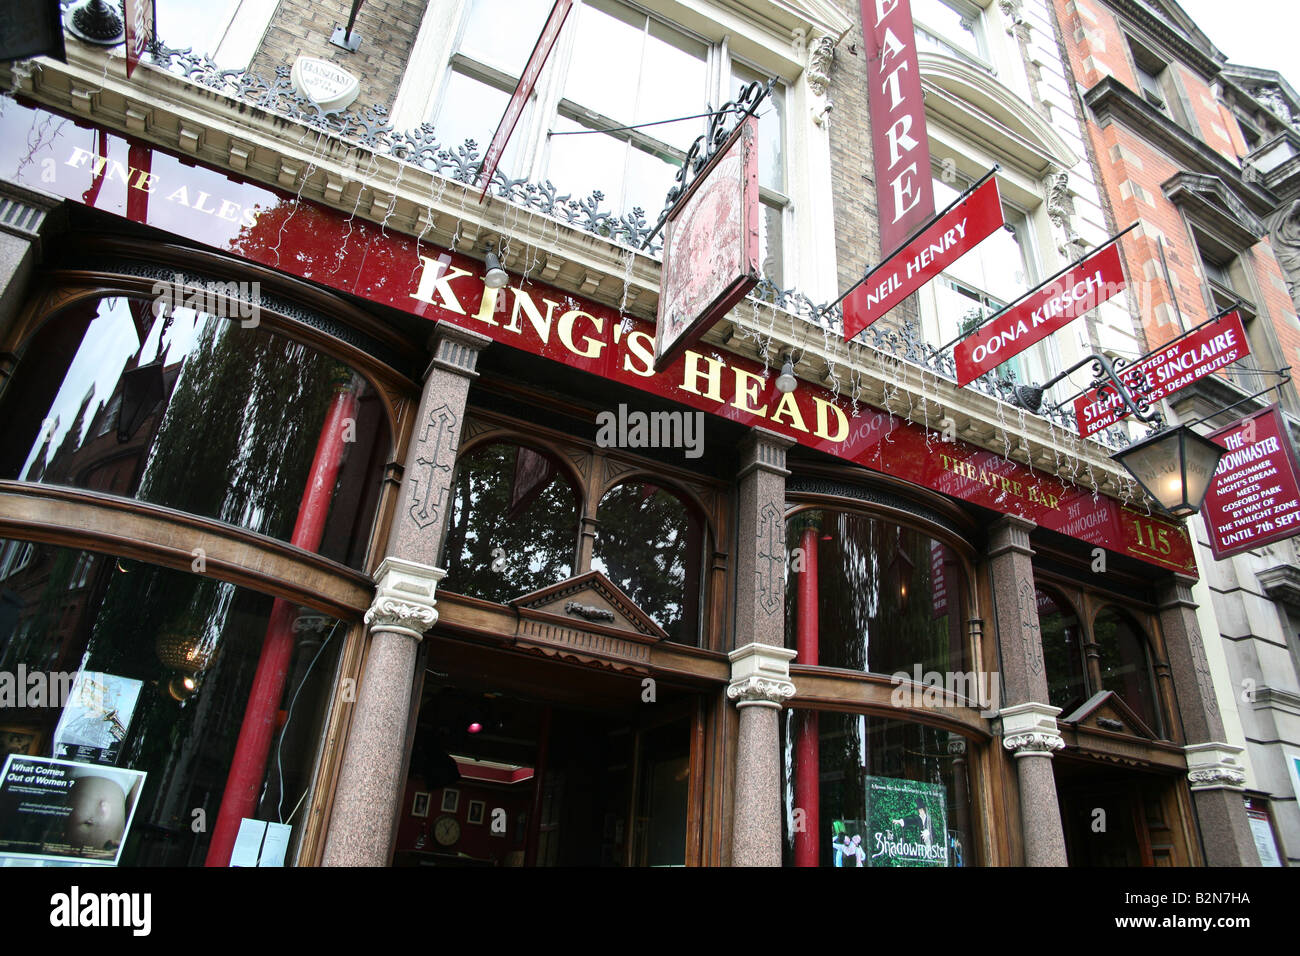 Kings Head theatre pub in Islington, North London - Stock Image